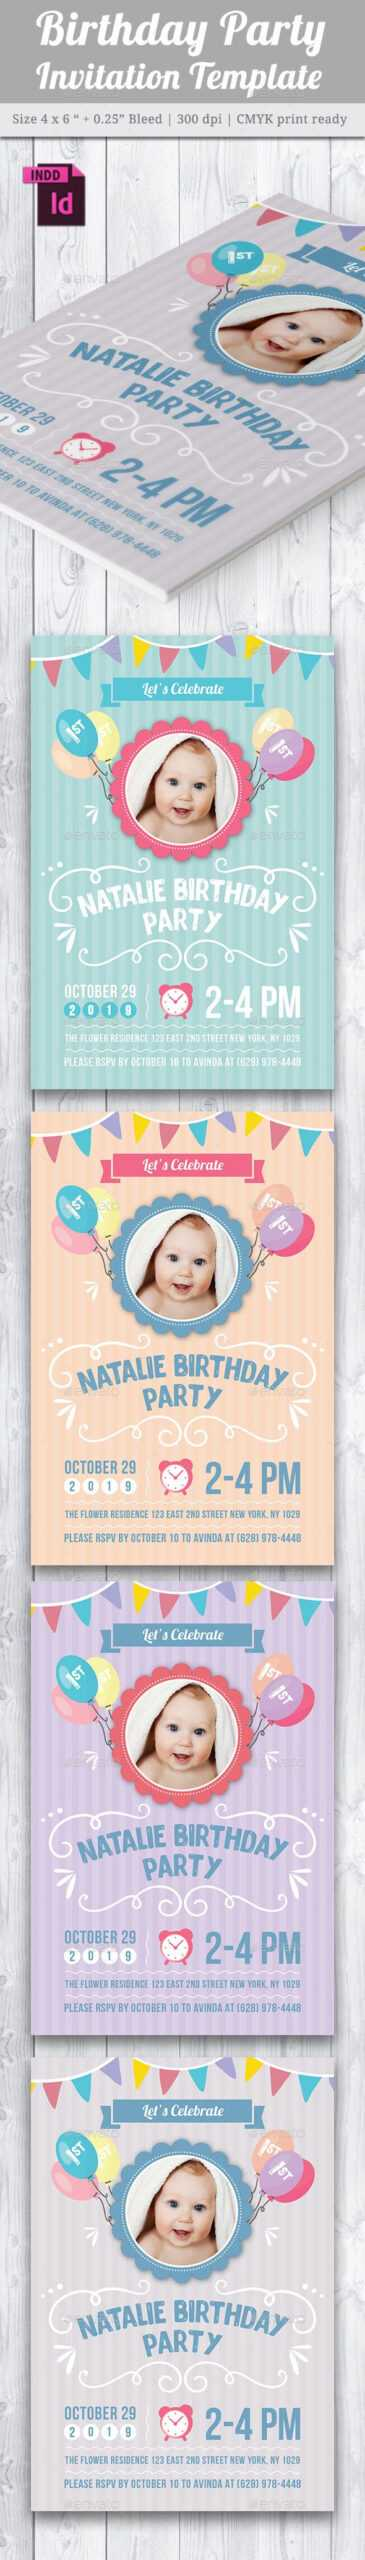 Baby Birthday Card Design Template Indesign Indd | Card Inside Birthday Card Template Indesign